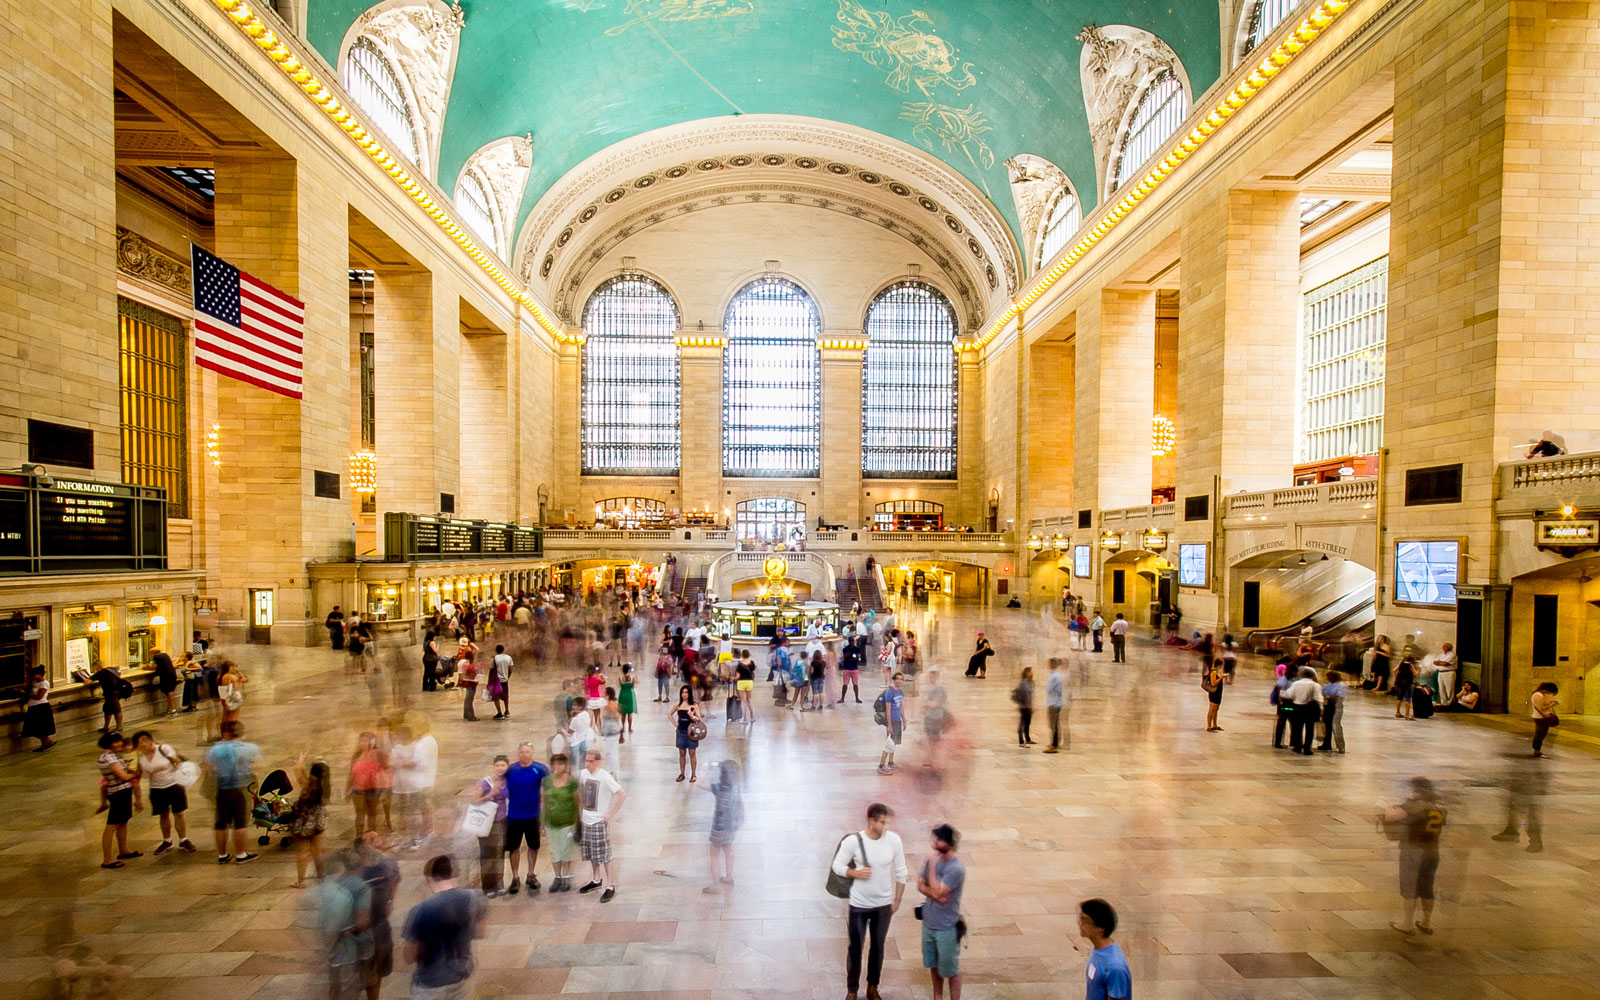 Grand Central Terminal in New York City, NY